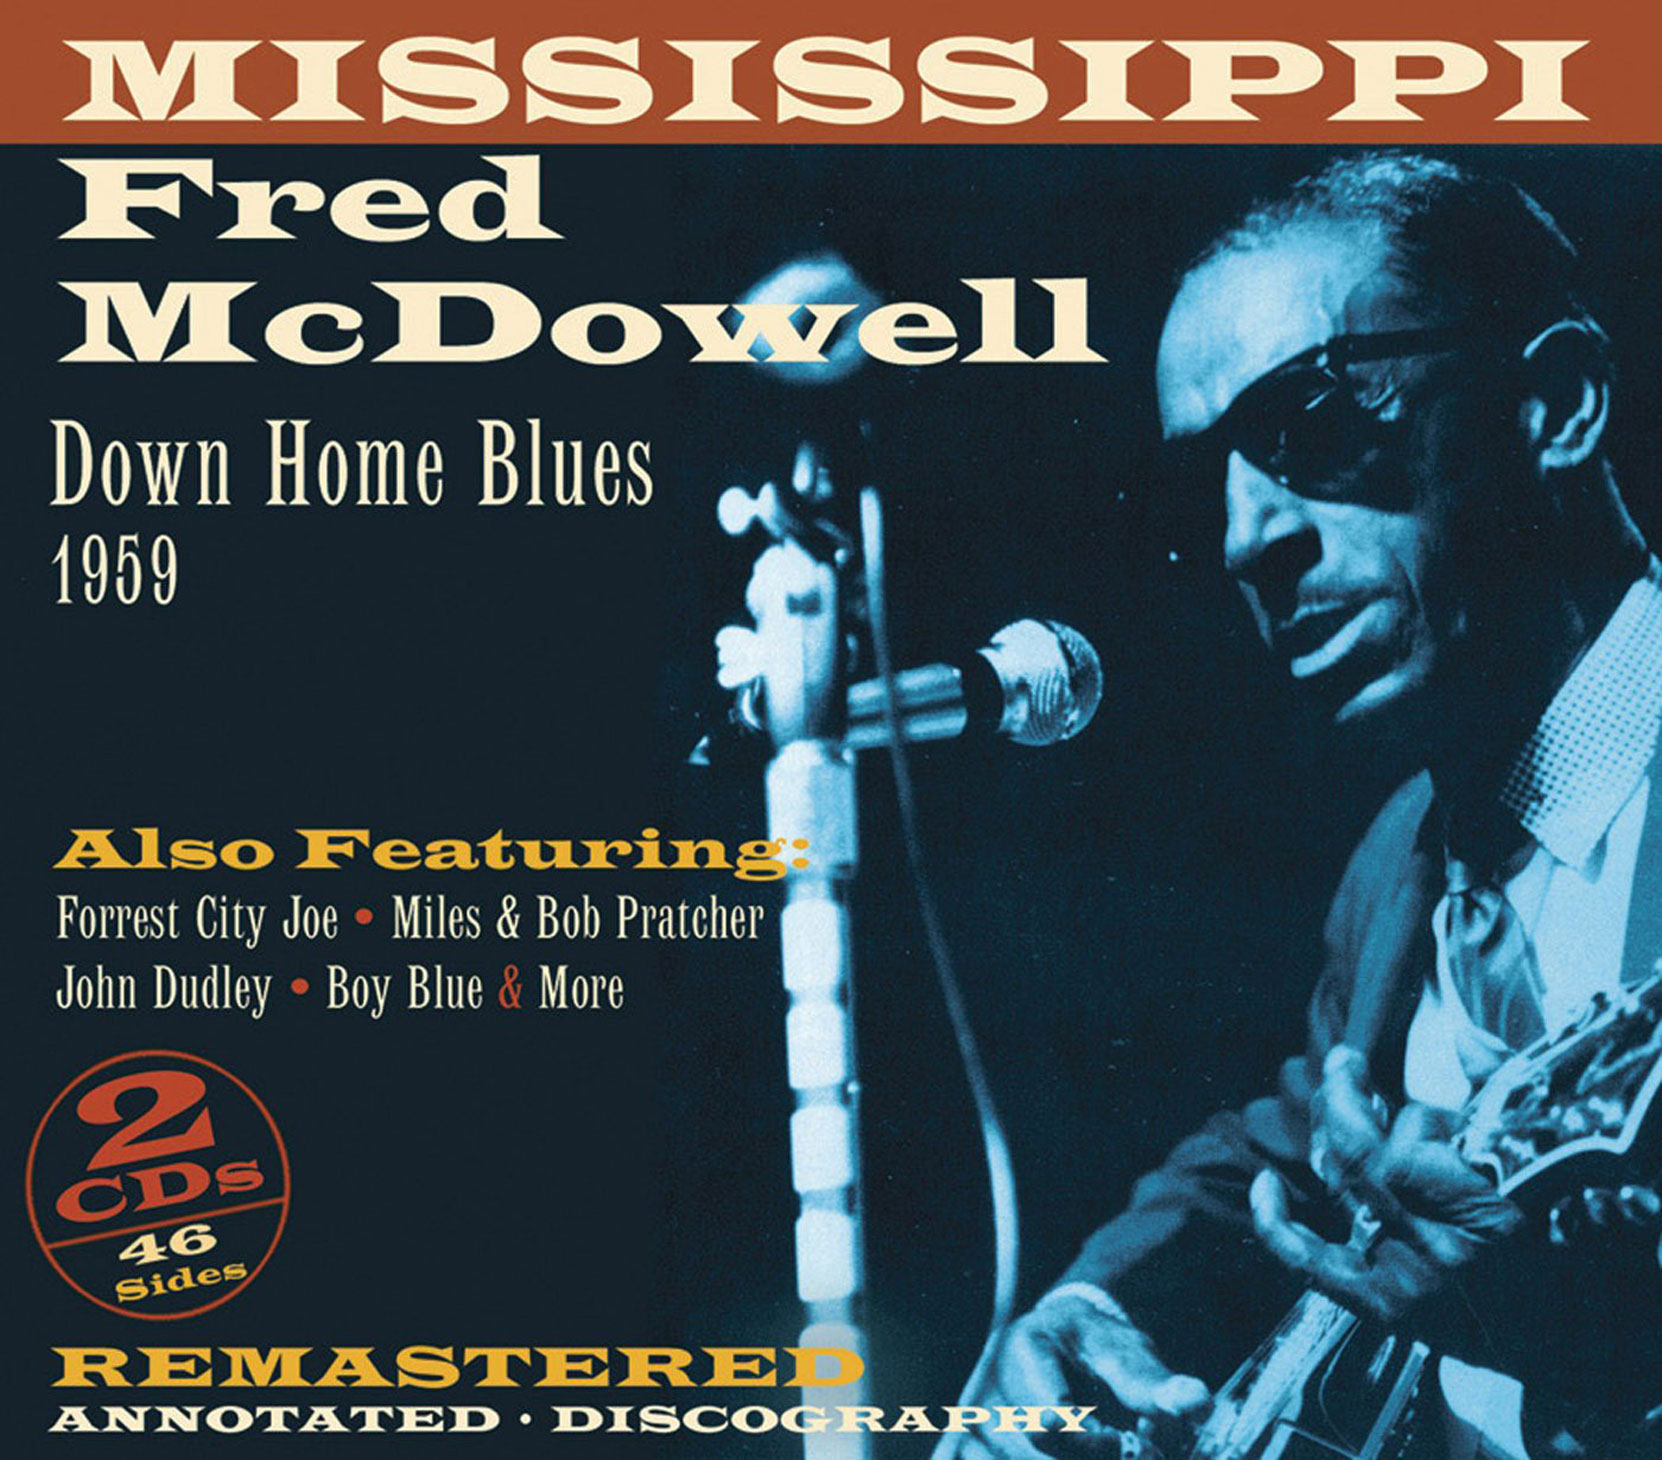 CD cover, Down Home Blues 1959 by Mississippi Fred McDowell, on JSP Records. This 2 CD set contains the complete 1959 Alan Lomax recordings of Mississippi Fred McDowell.